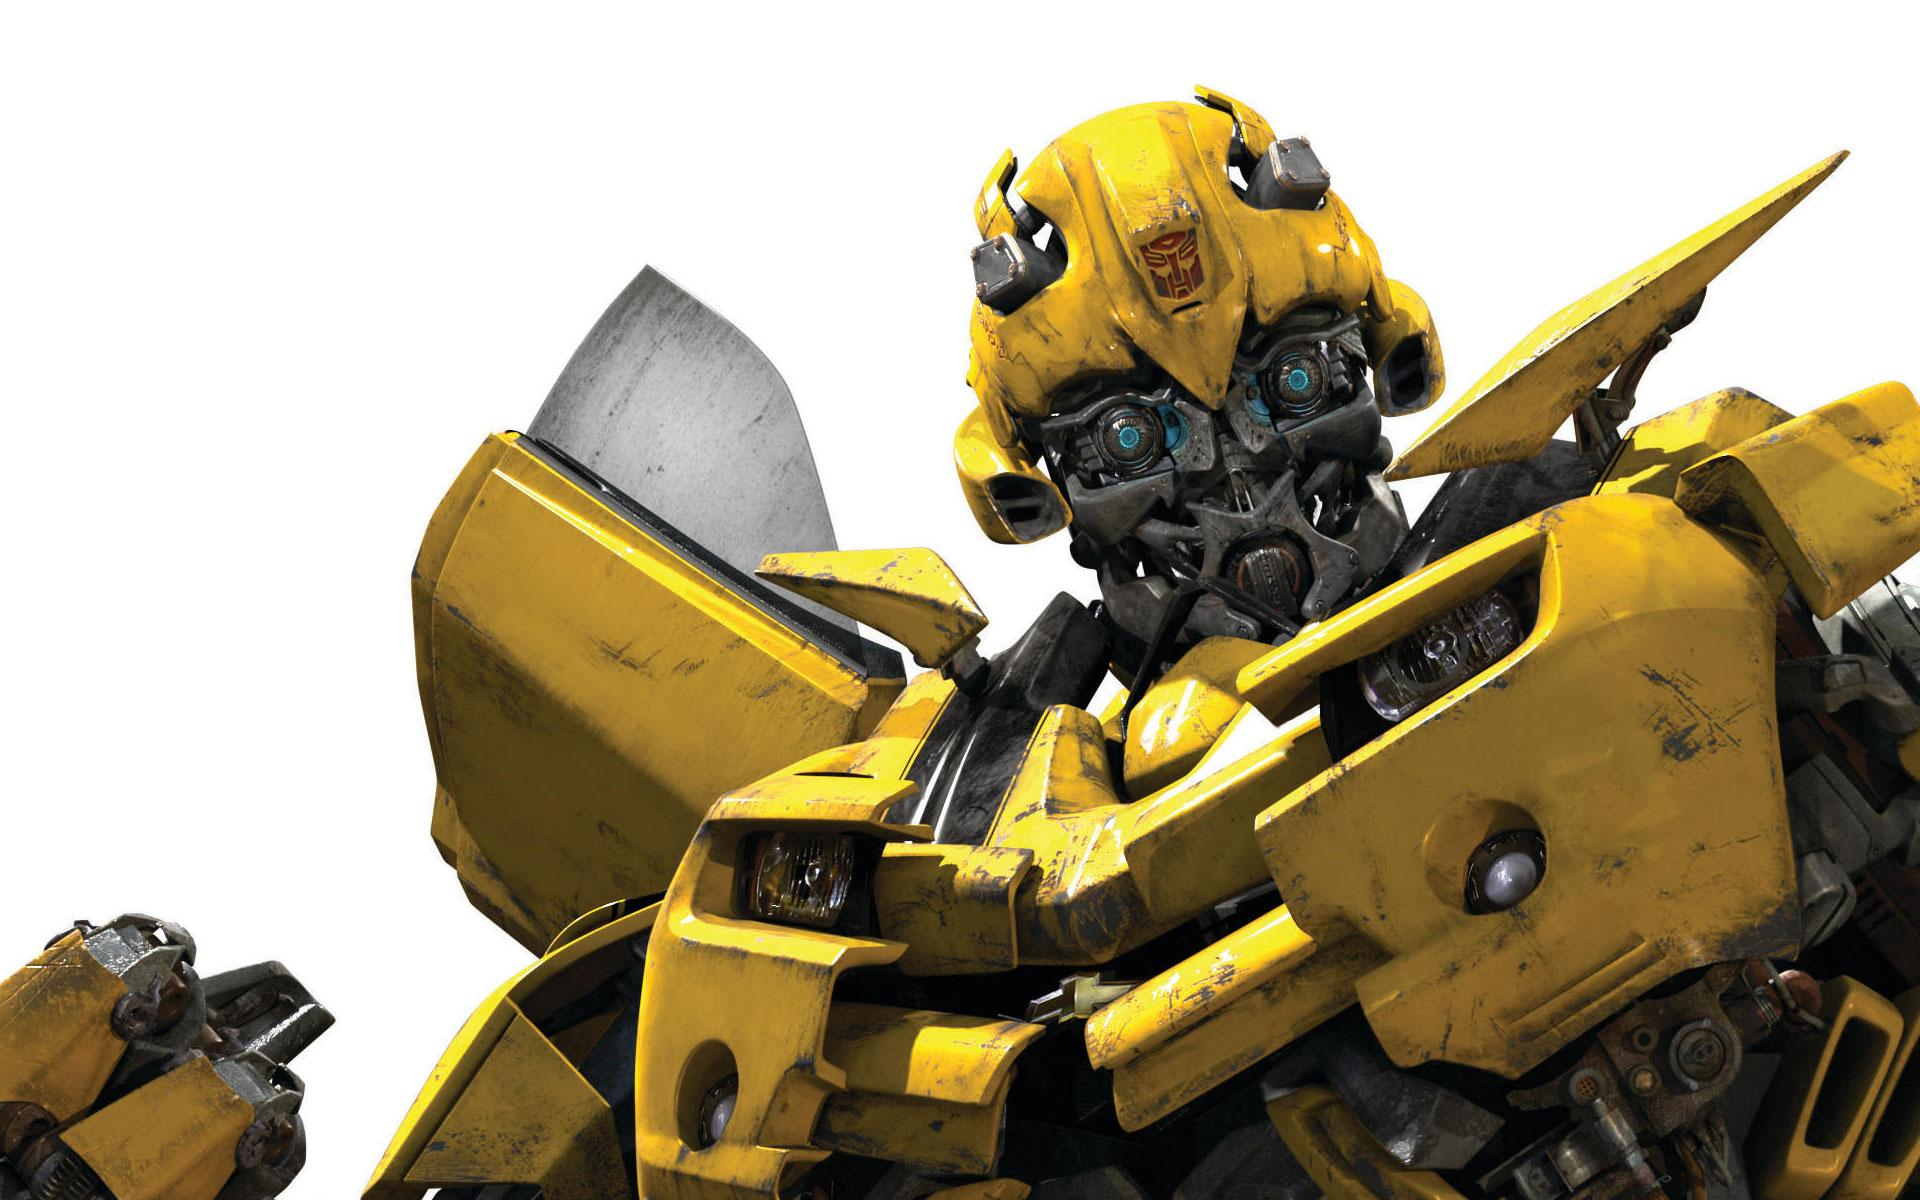 Transformers Bumblebee spinoff film in the works